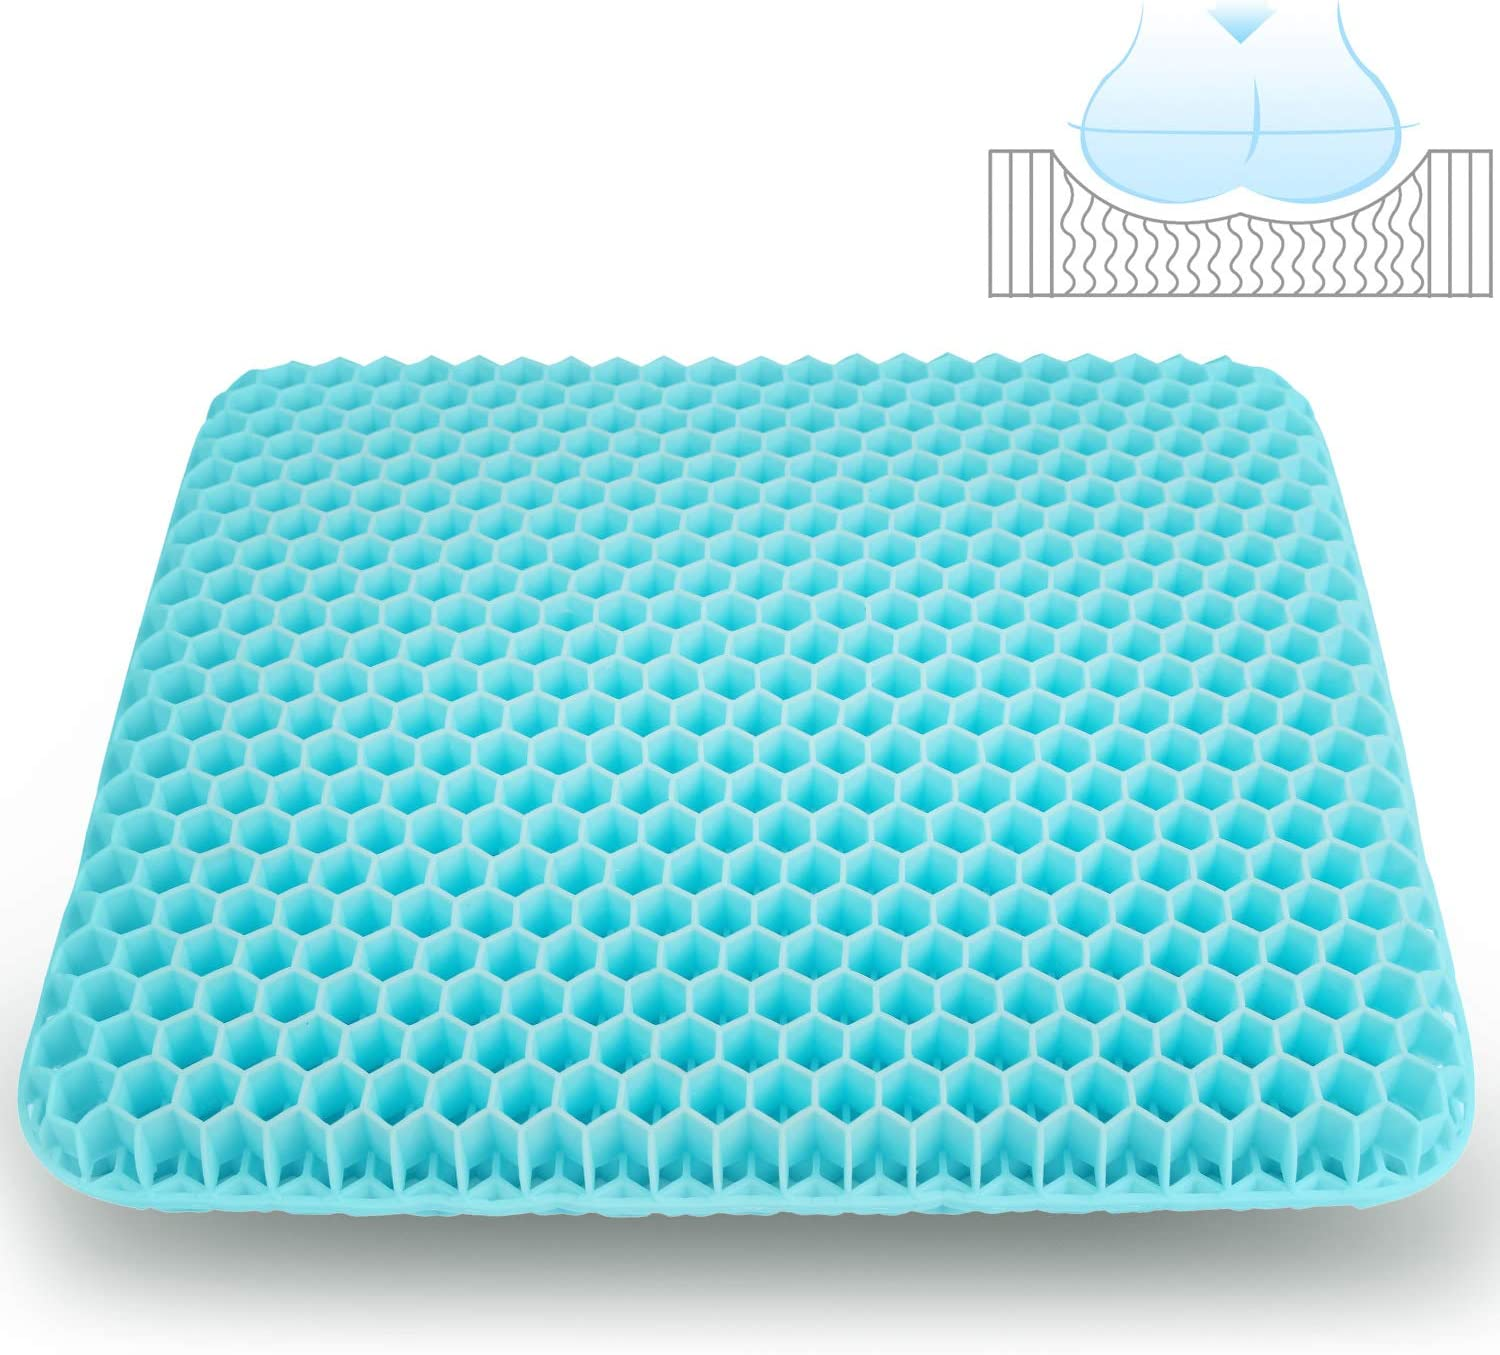 STSTECH Gel Seat Cushion for Office Chair Home Cars Wheelchair,Double Layer Seat Cushion Breathable Honeycomb Pressure Relief Egg Sitting Pad with Anti-Slip Washable Cover (Pattern-01)